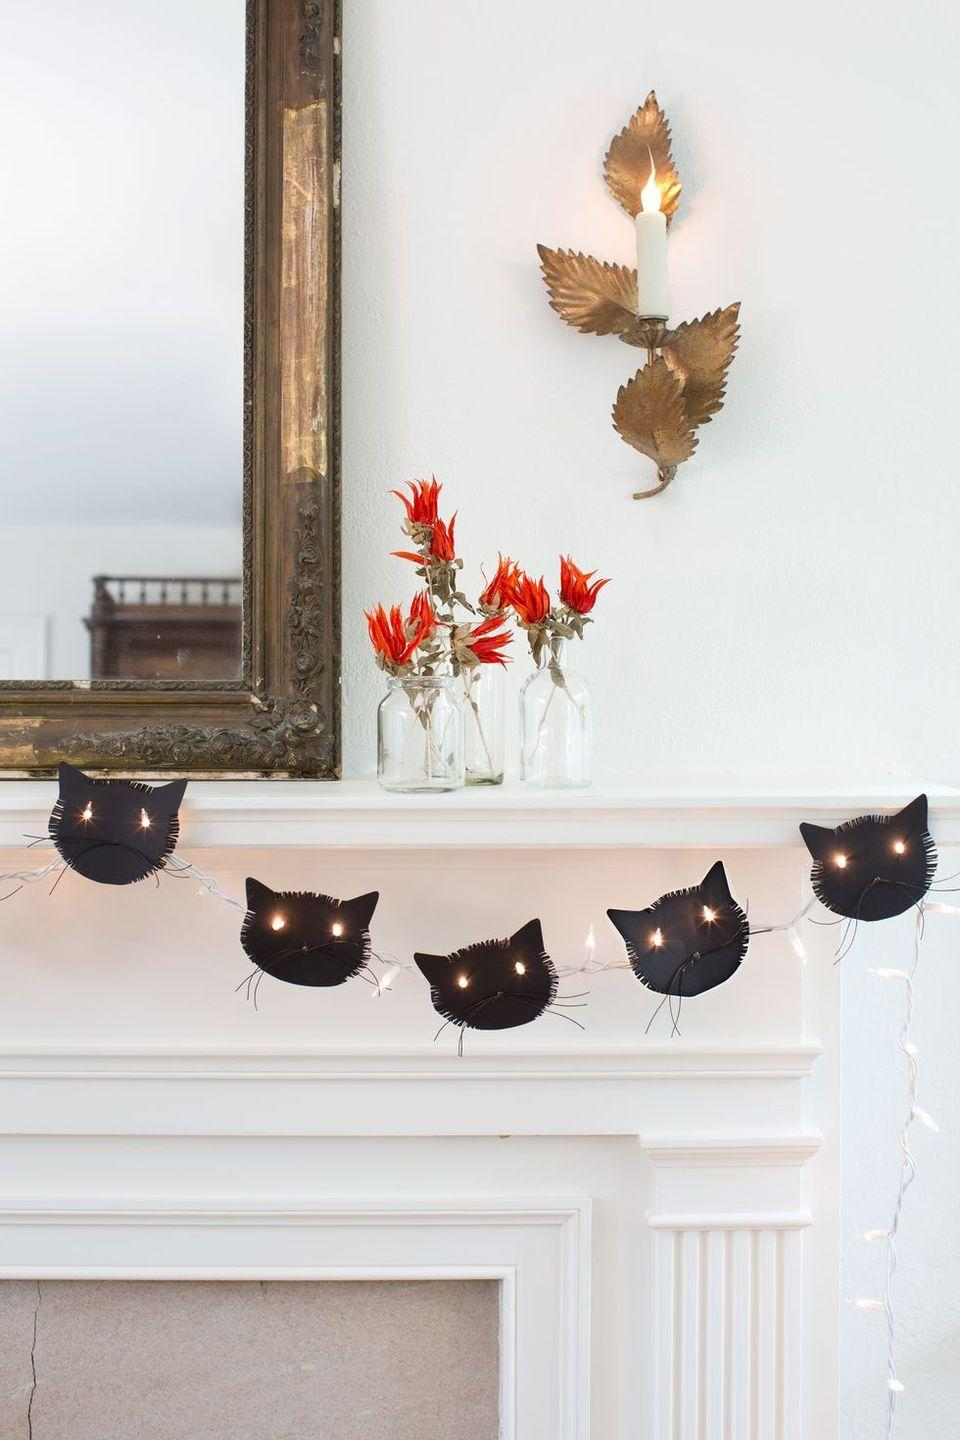 """<p>For Halloween, delight your kids with <em>purrfect</em> cat garland that's made with string lights. </p><p><a href=""""https://www.countryliving.com/home-design/decorating-ideas/g1936/halloween-mantel-ideas/?slide=15"""" rel=""""nofollow noopener"""" target=""""_blank"""" data-ylk=""""slk:Get the tutorial here >>"""" class=""""link rapid-noclick-resp""""><em>Get the tutorial here >></em></a></p>"""